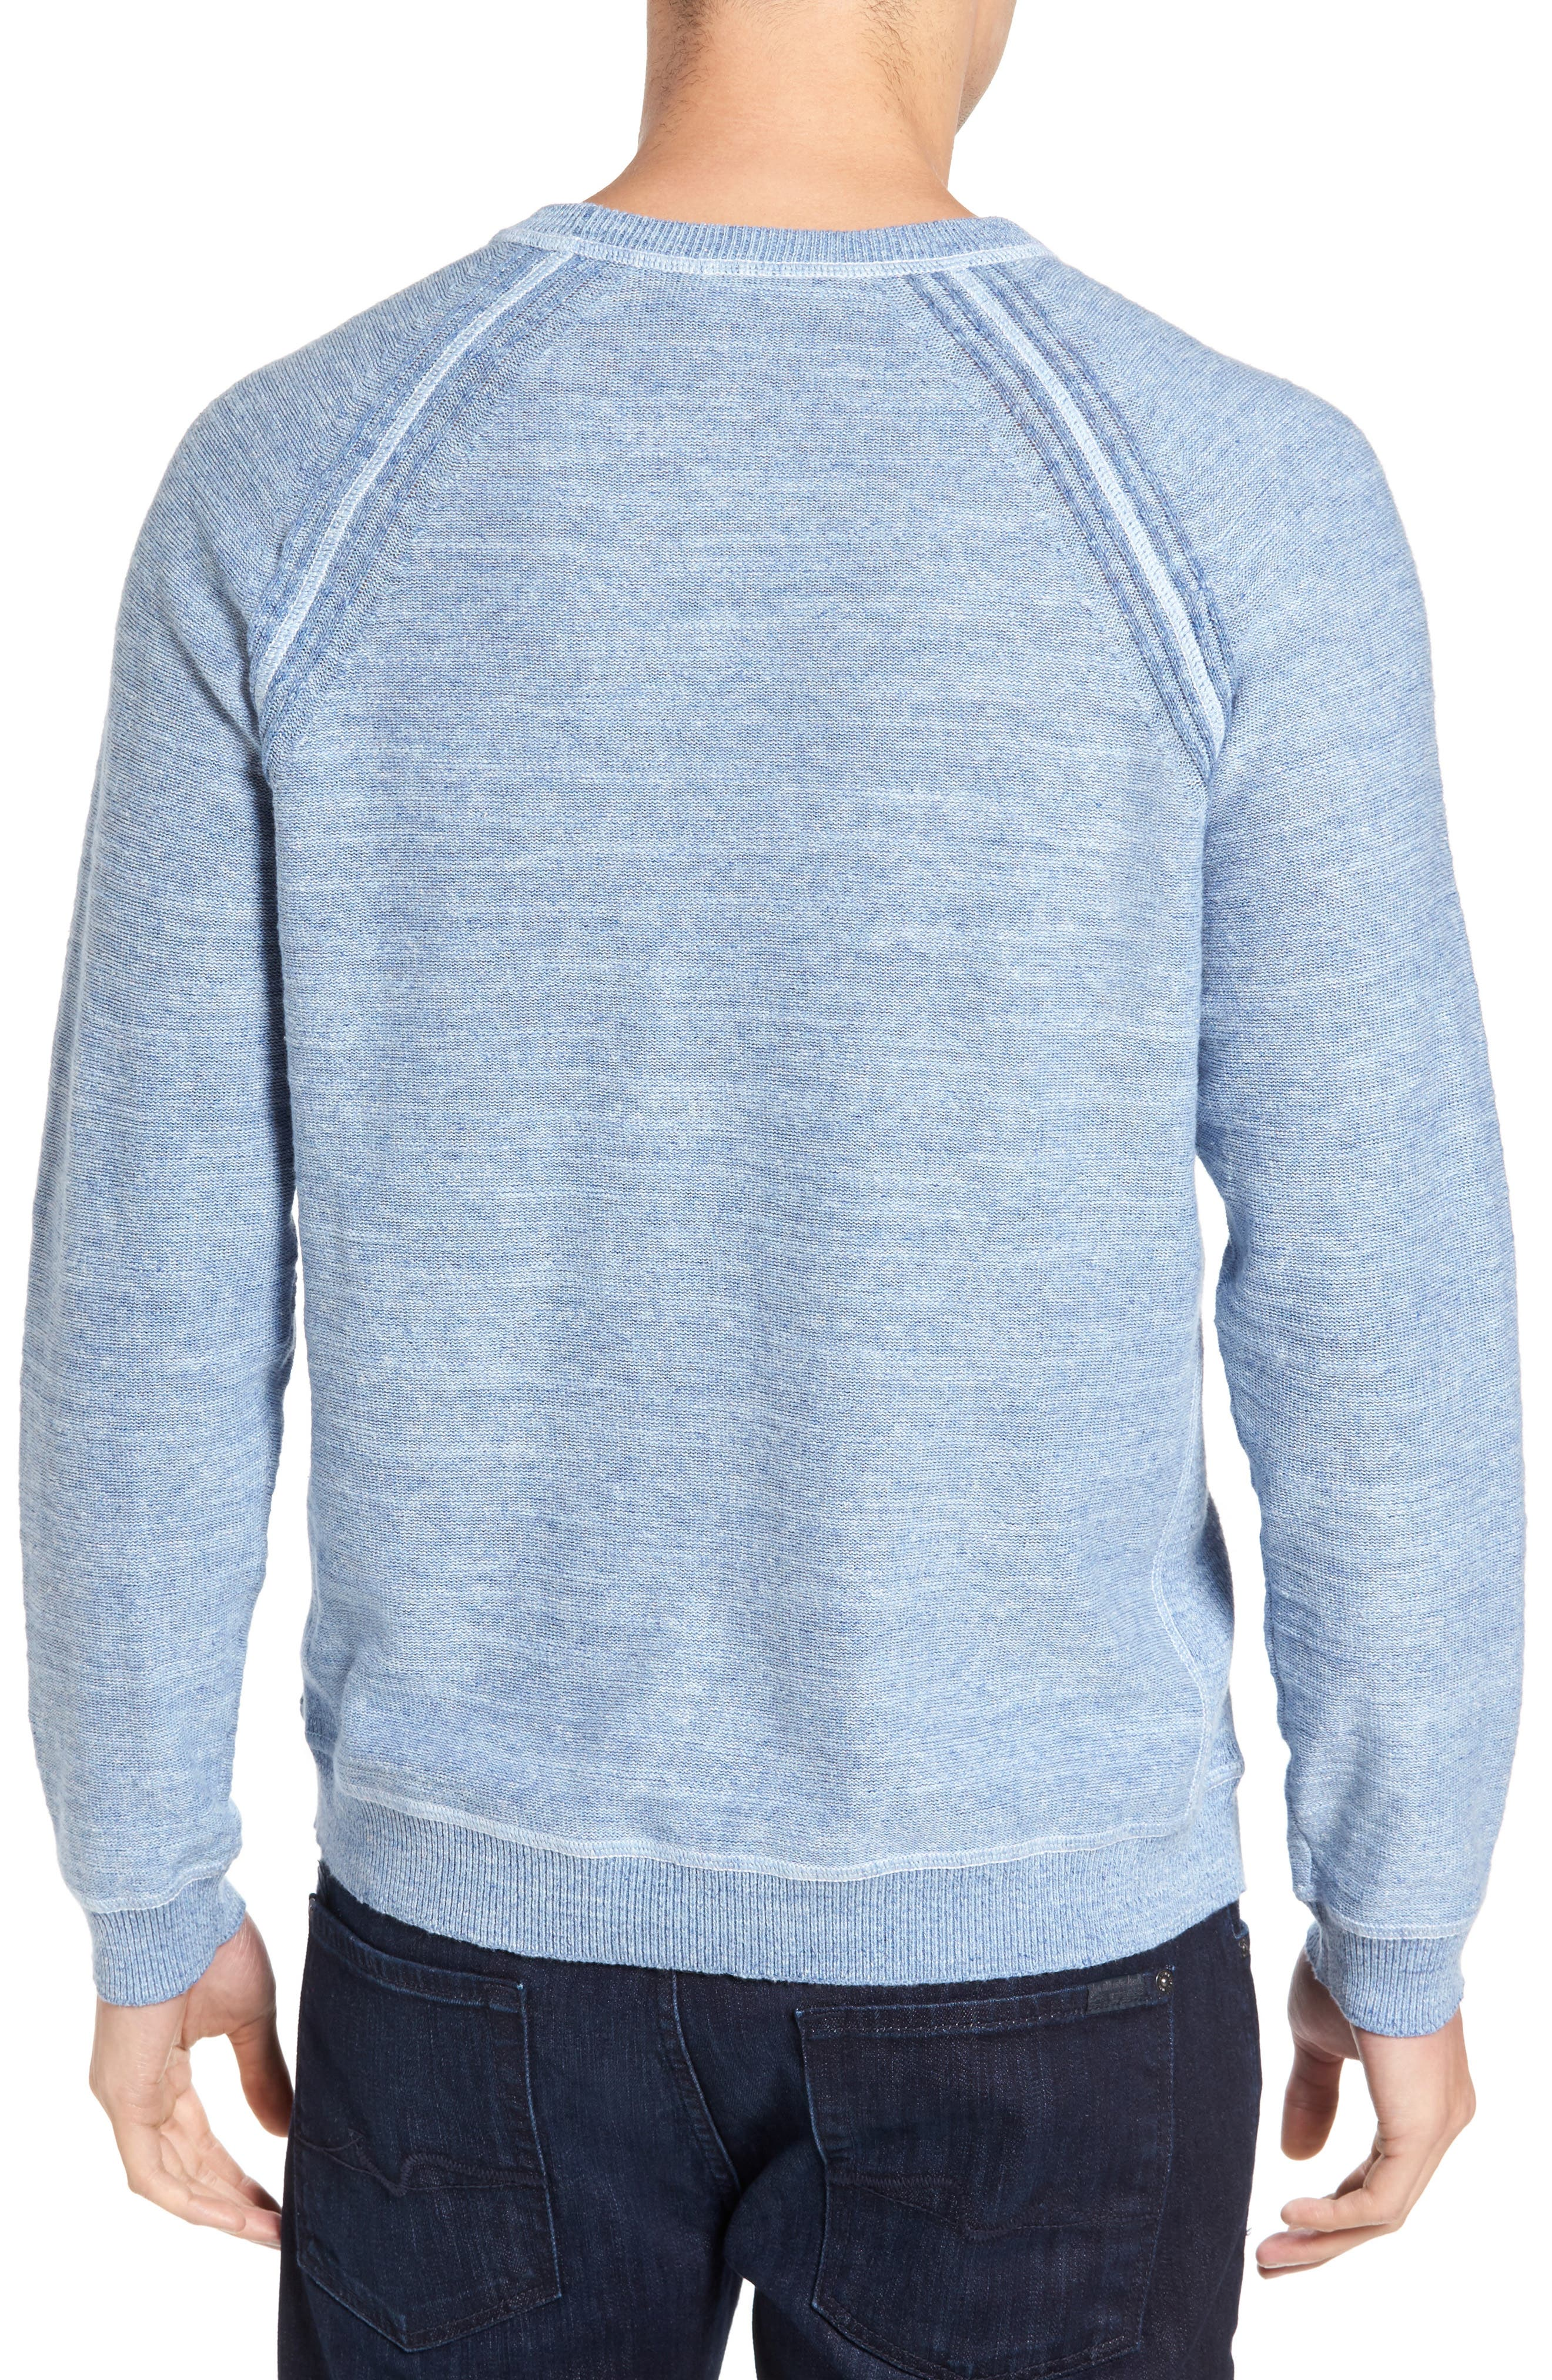 Sandy Bay Reversible Crewneck Sweater,                             Alternate thumbnail 3, color,                             100